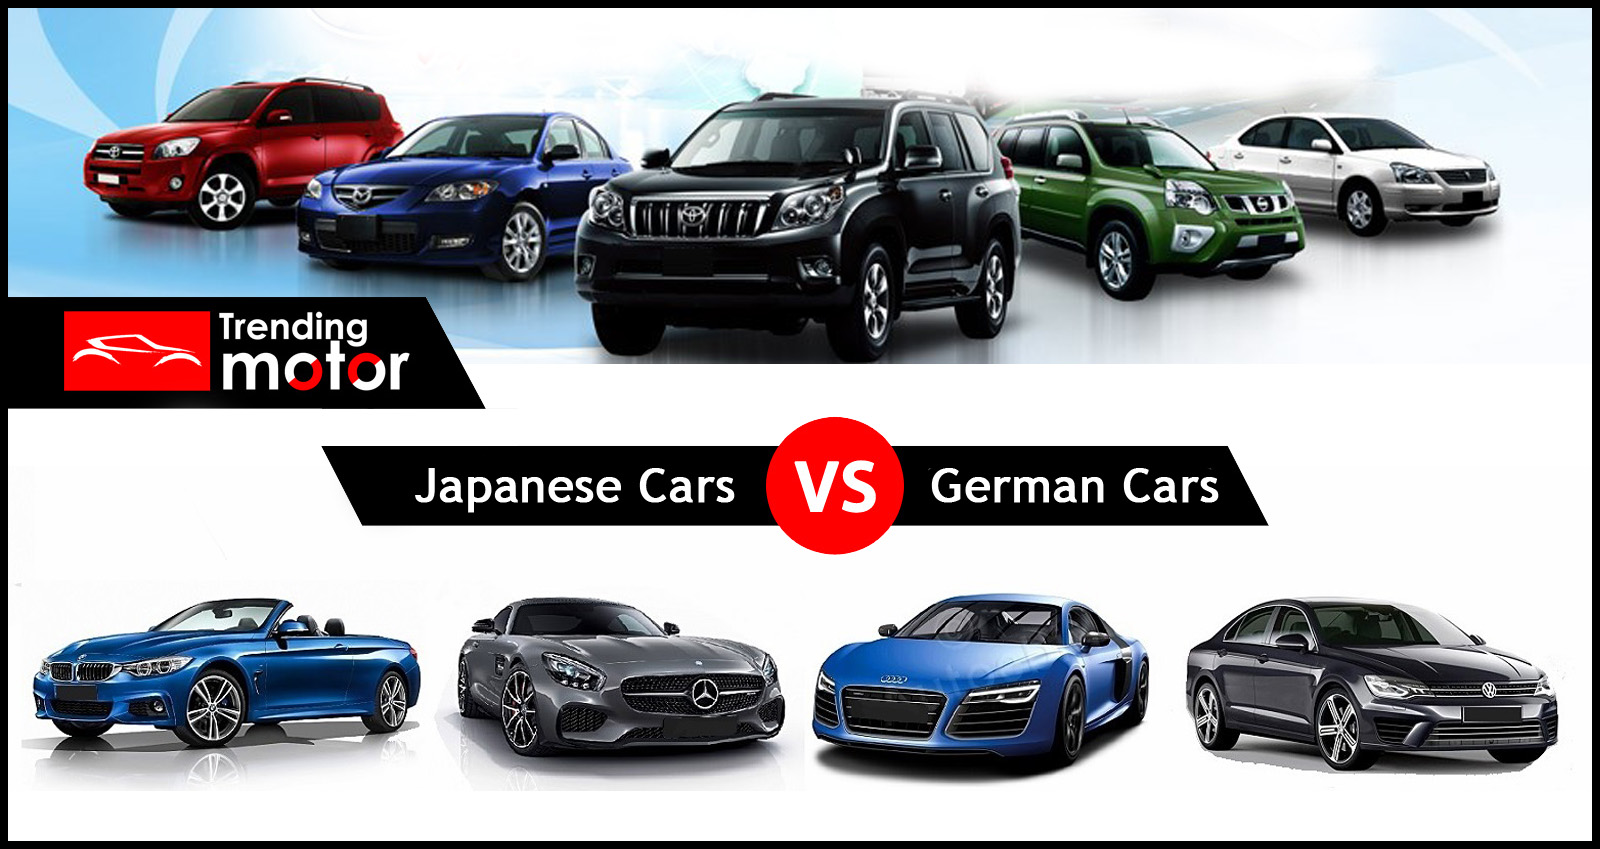 Who is the better one : Japanese or German cars